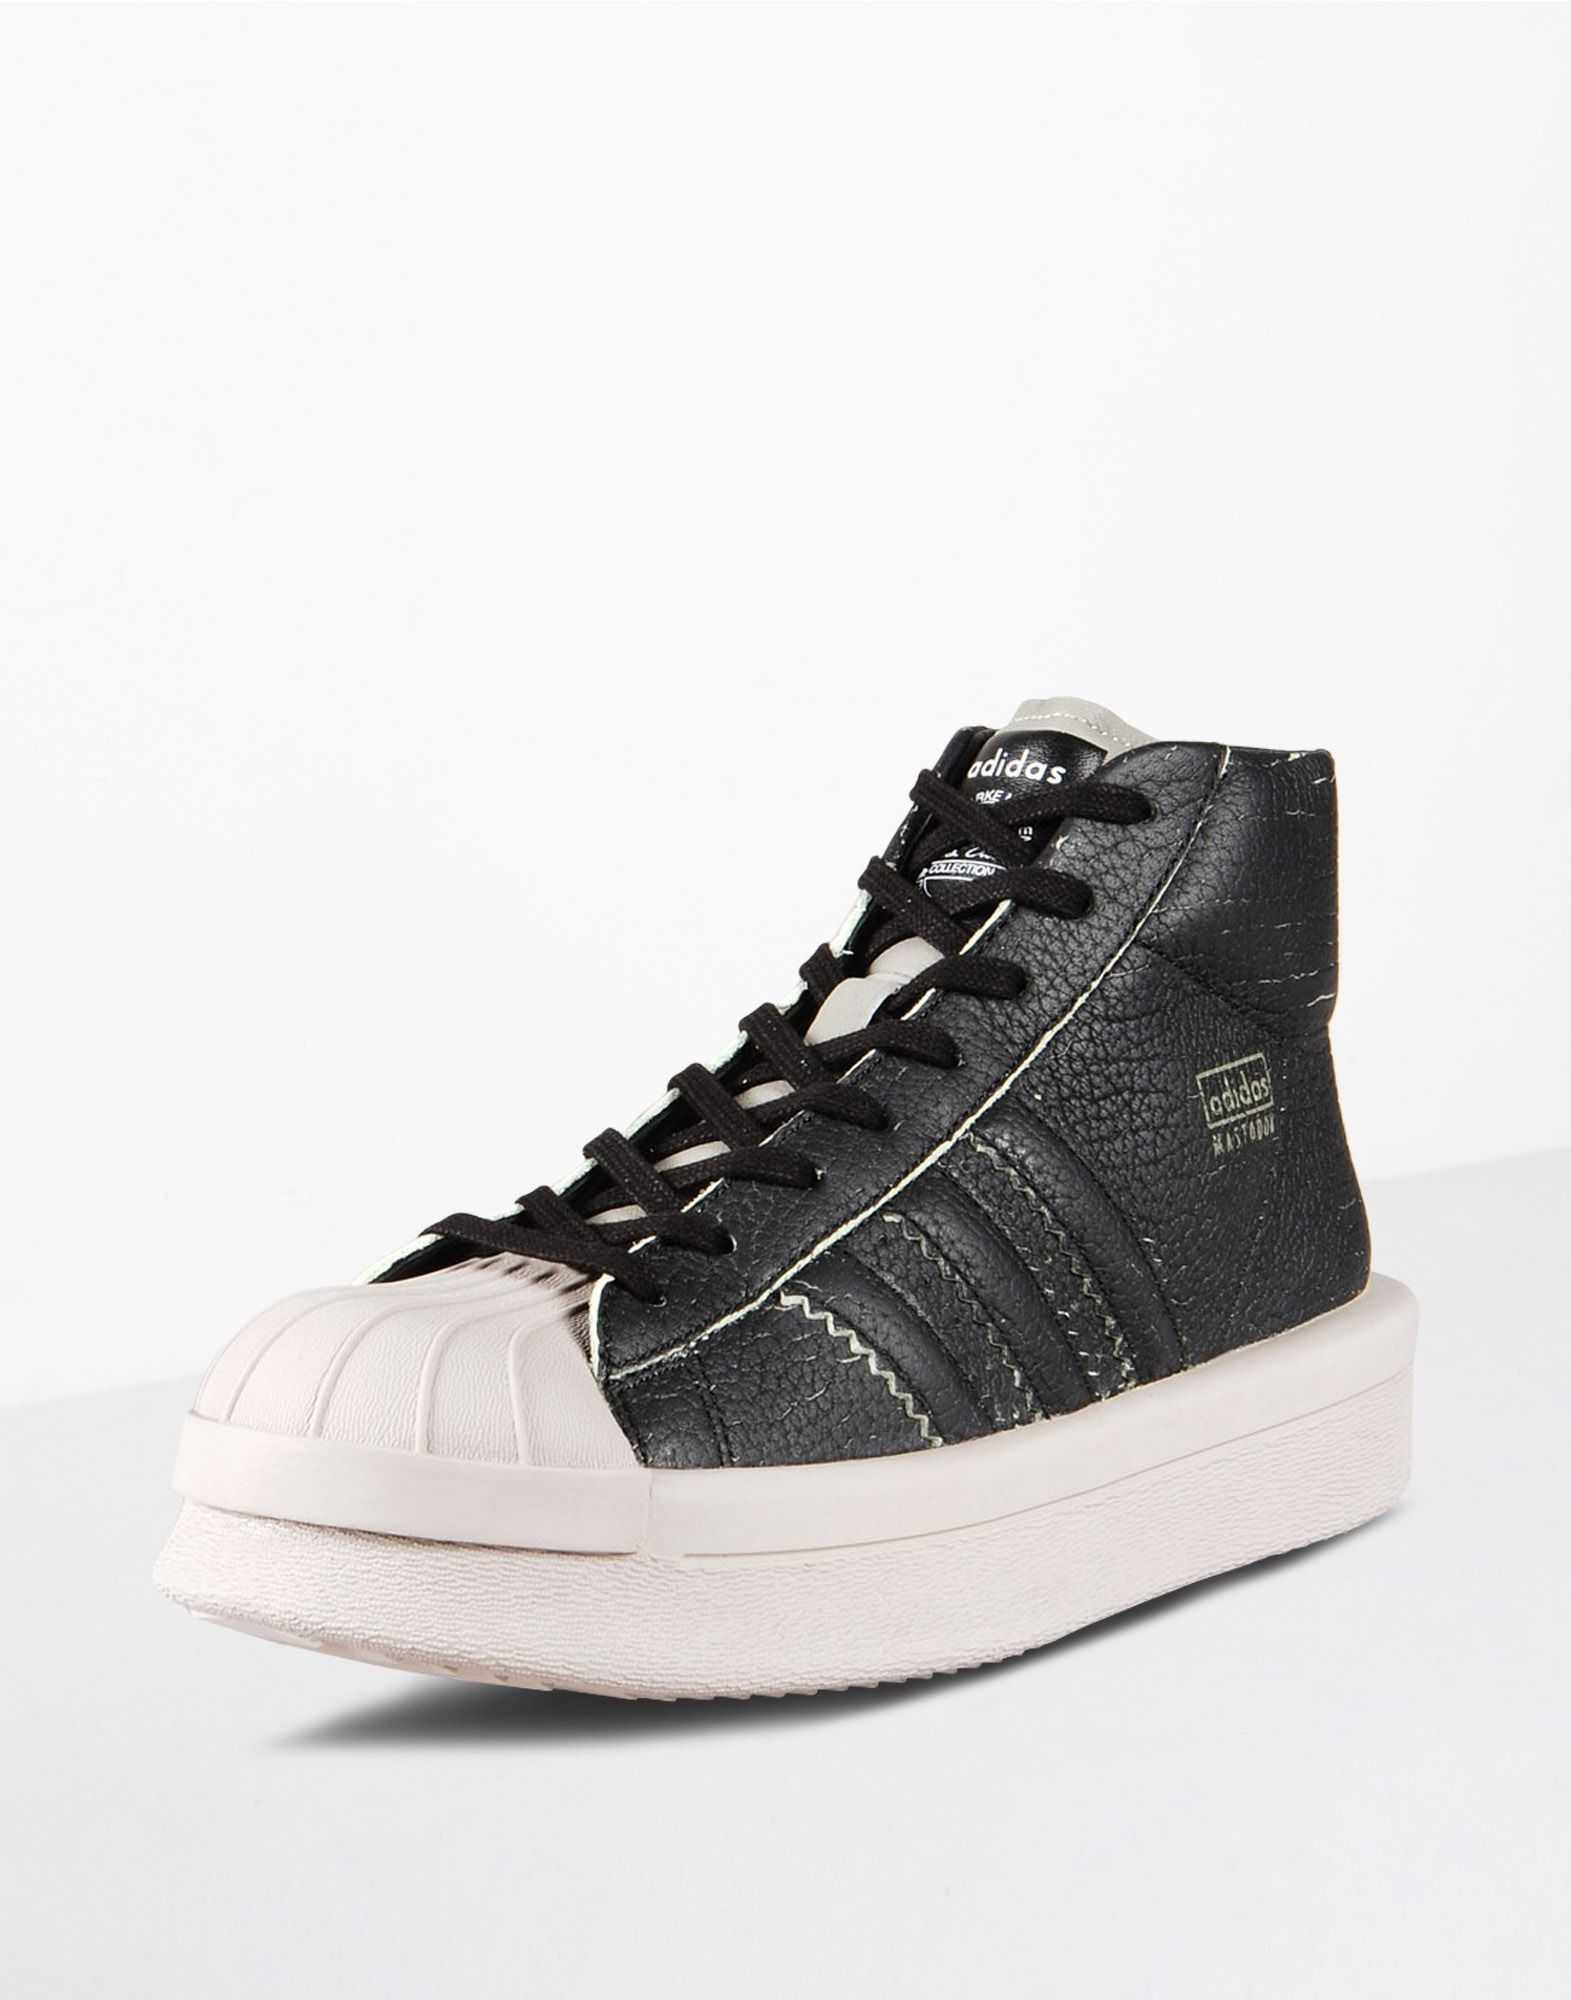 adidas pro model shoes